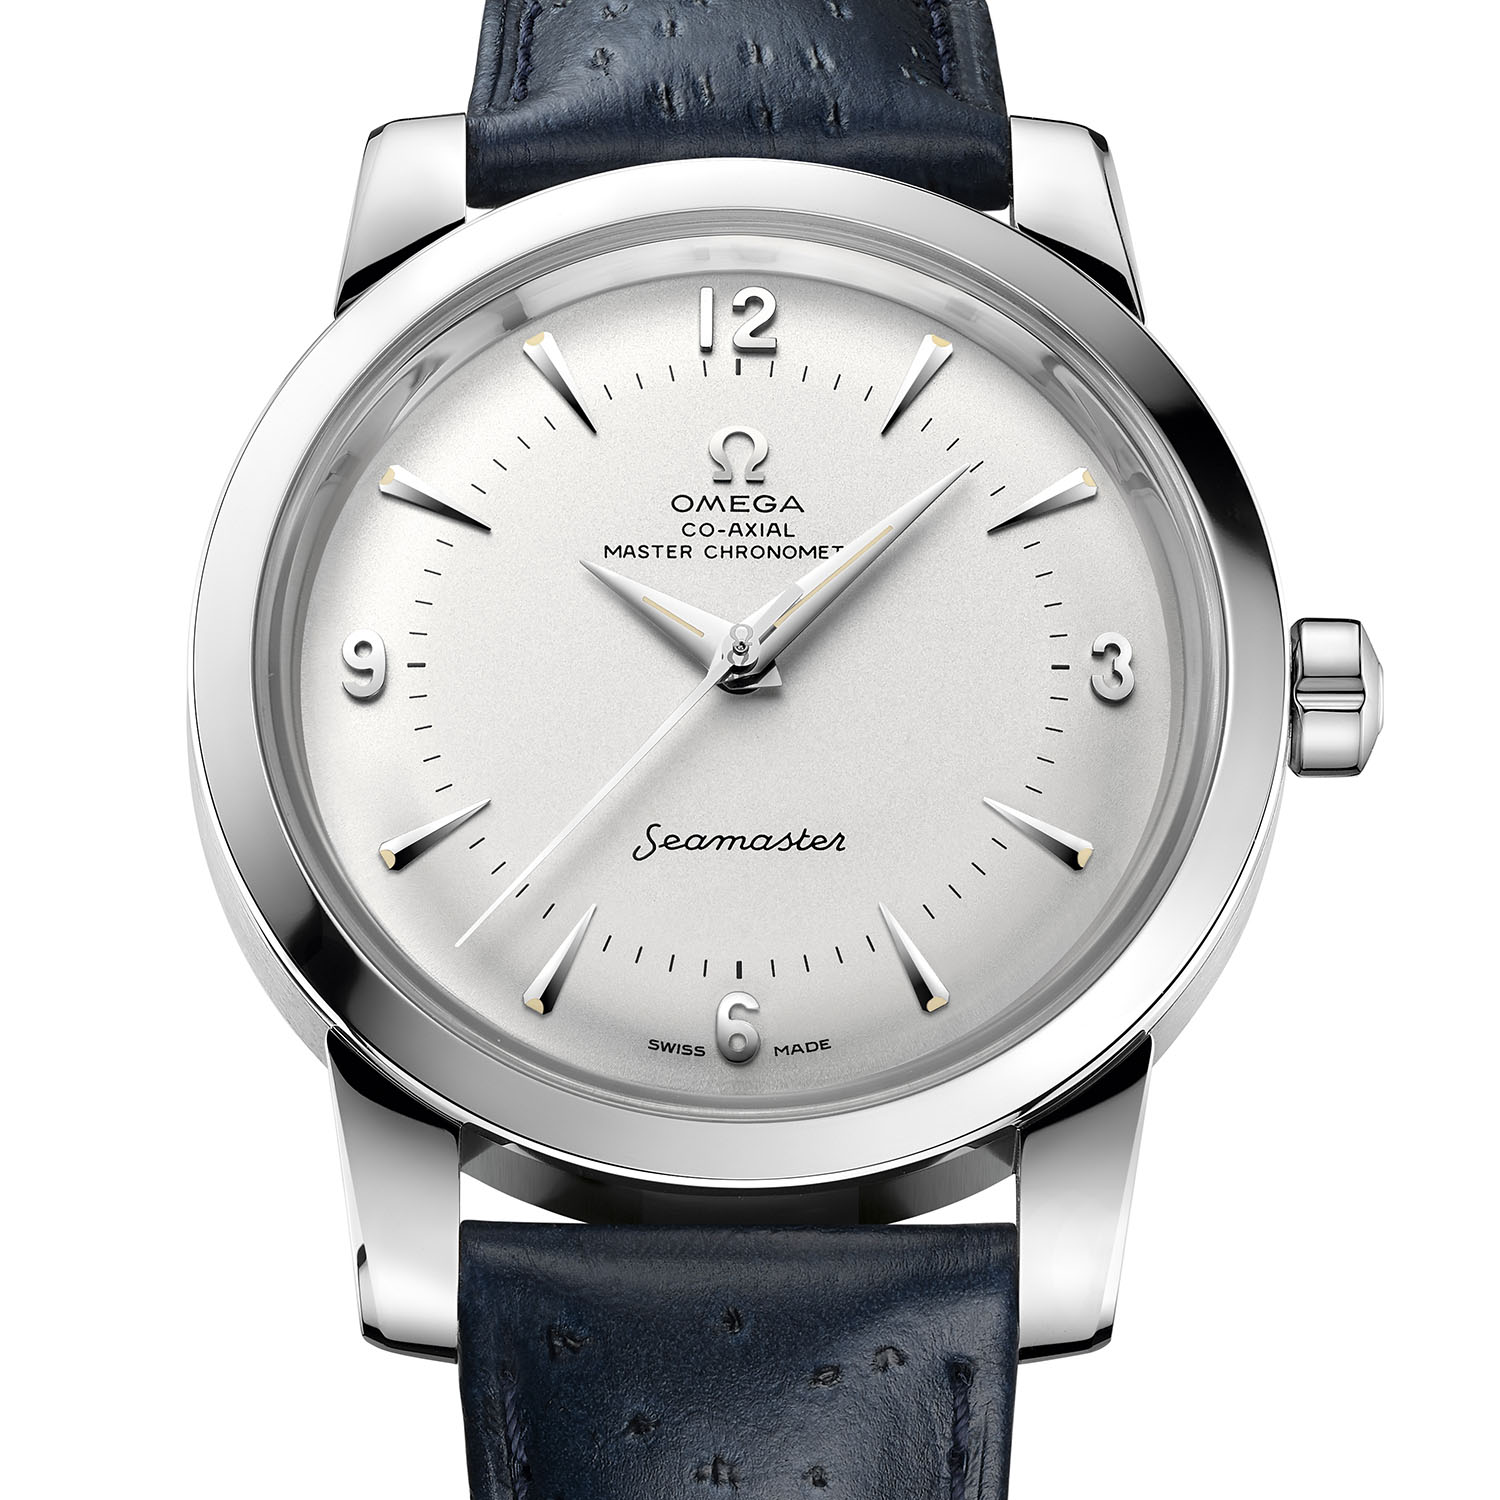 Omega Seamaster 1948 Limited Edition Central Second Baselworld 2018 - 511.13.38.20.02.001